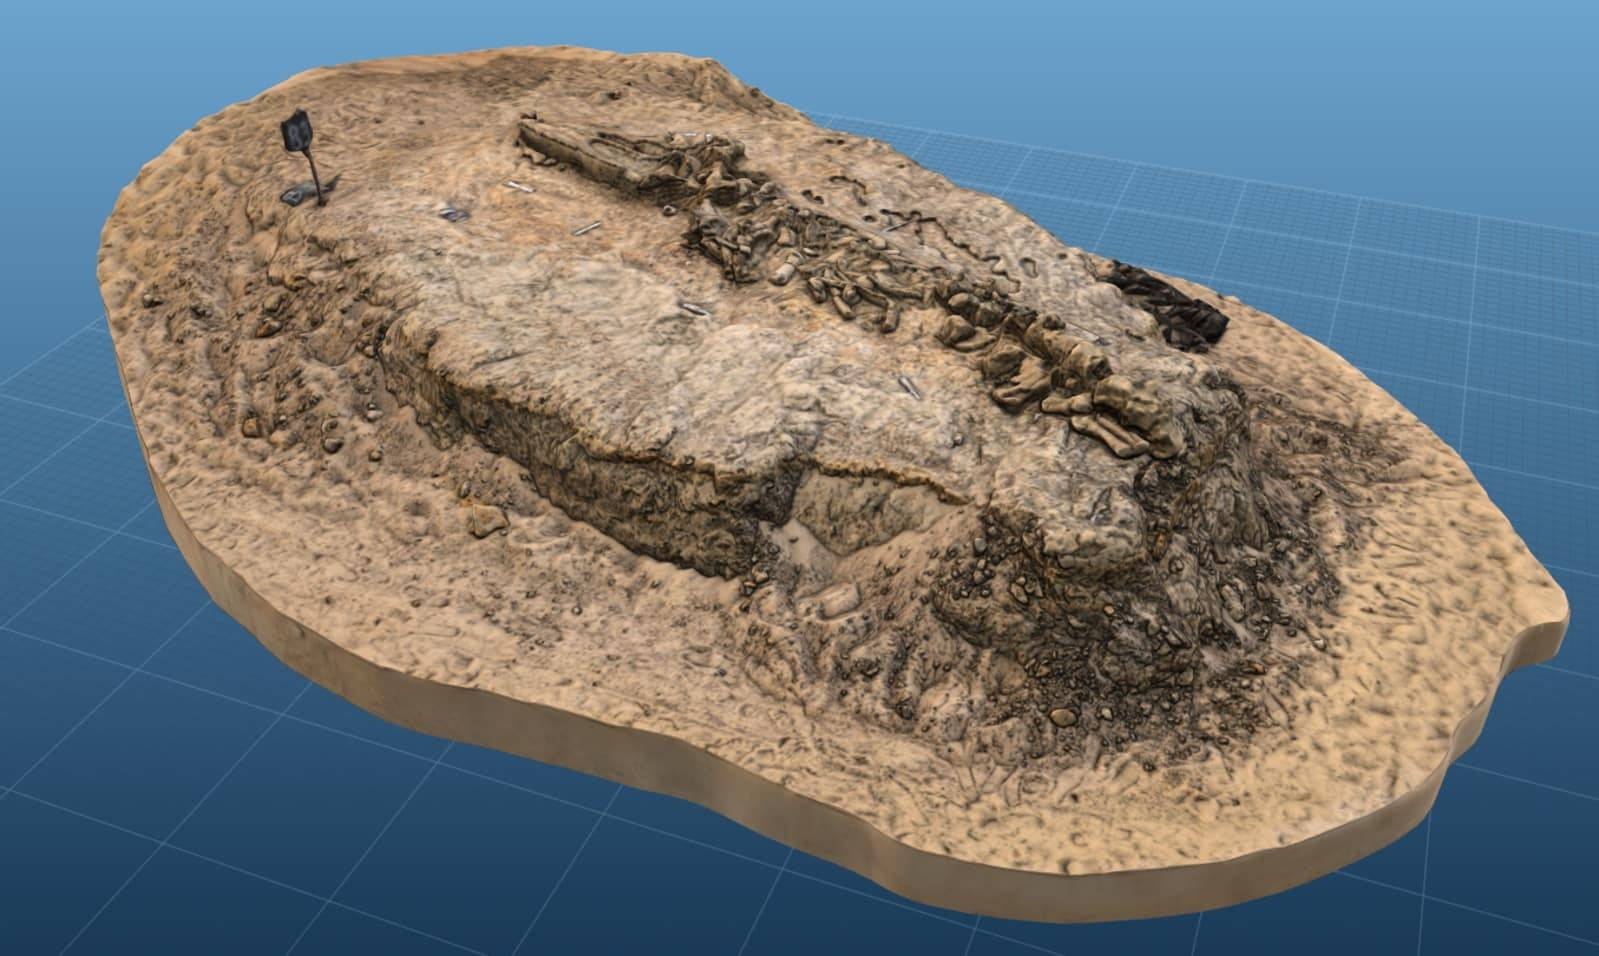 3D model of fossil whale MPC 675 from Cerro Ballena. (Image courtesy of Smithsonian.).